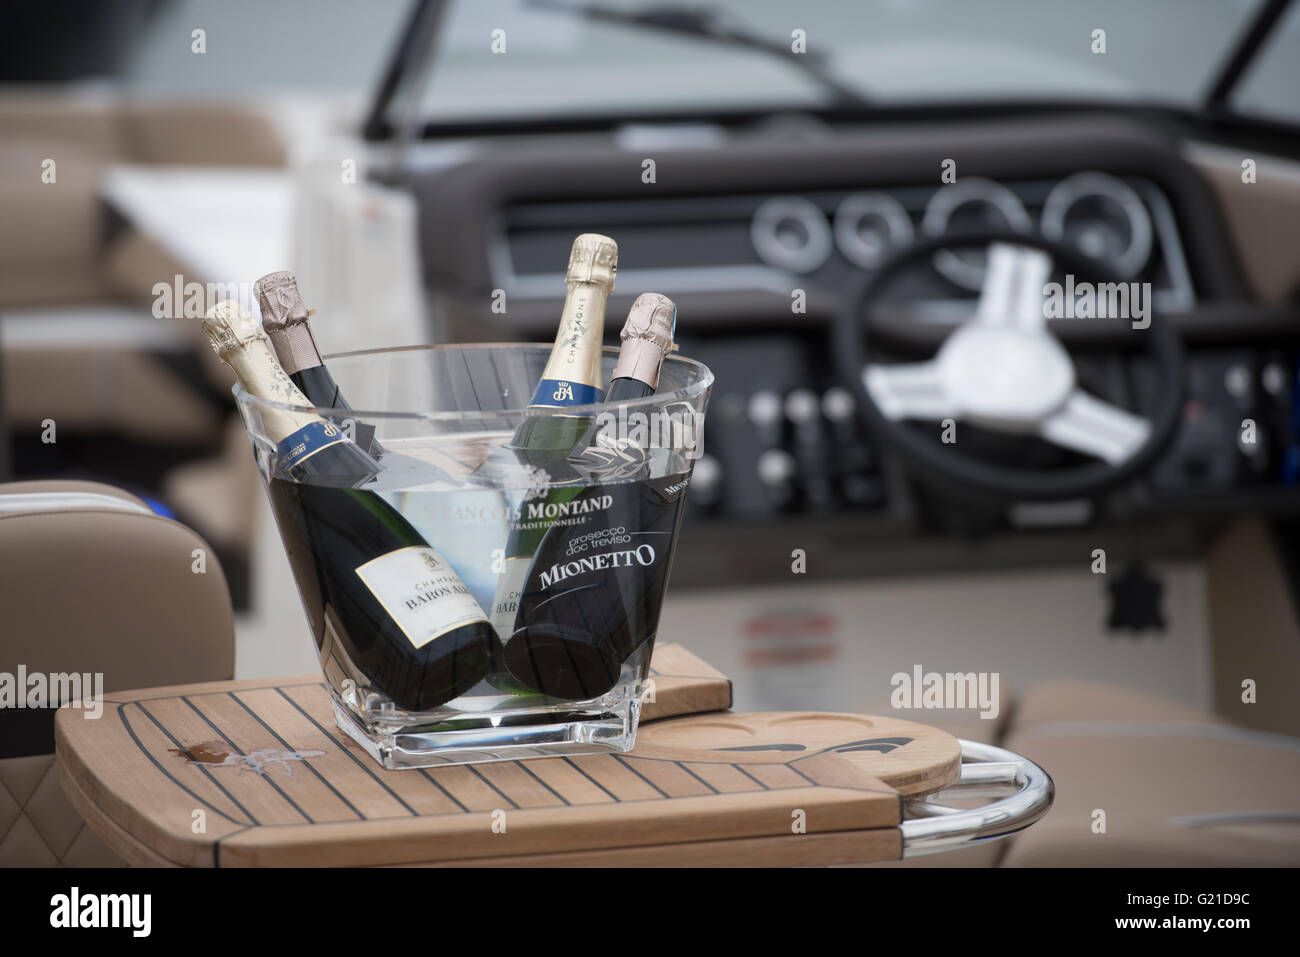 Poole, UK. 22nd May, 2016. Bottles of champaign on a prestigious boat at Poole Harbour boat show. Credit:  martin - Stock Image